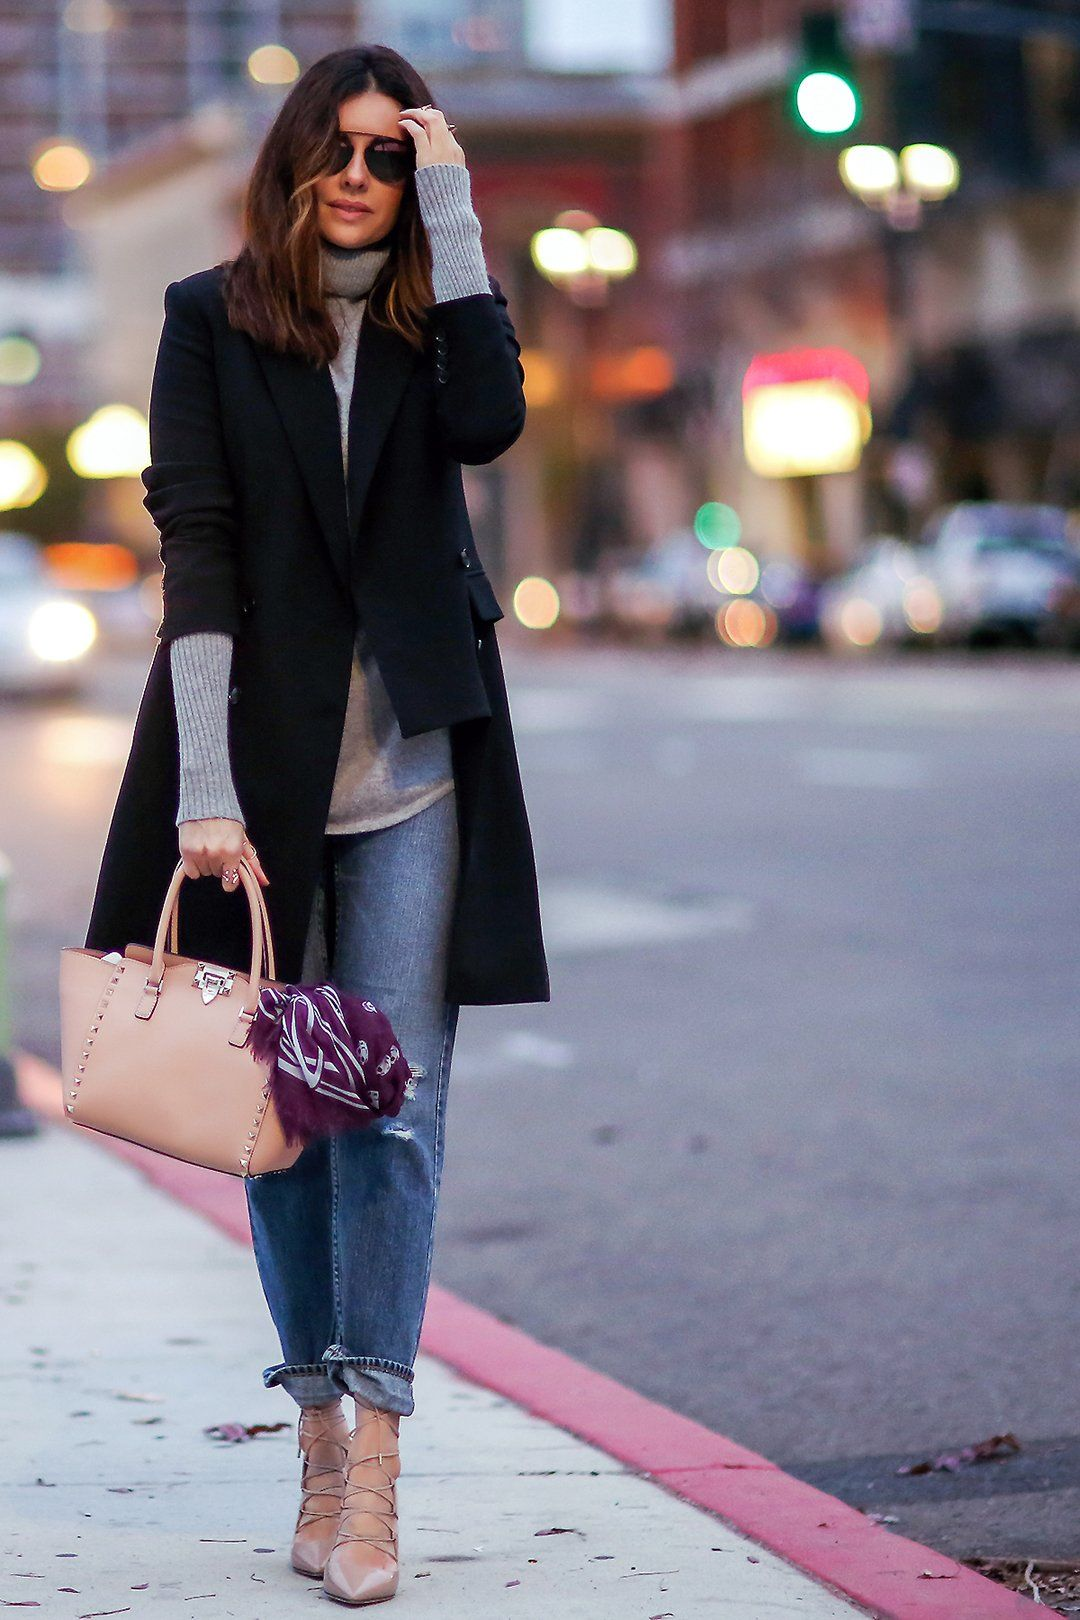 Cute Winter Outfits To Get You Inspired | Alexander mcqueen ...